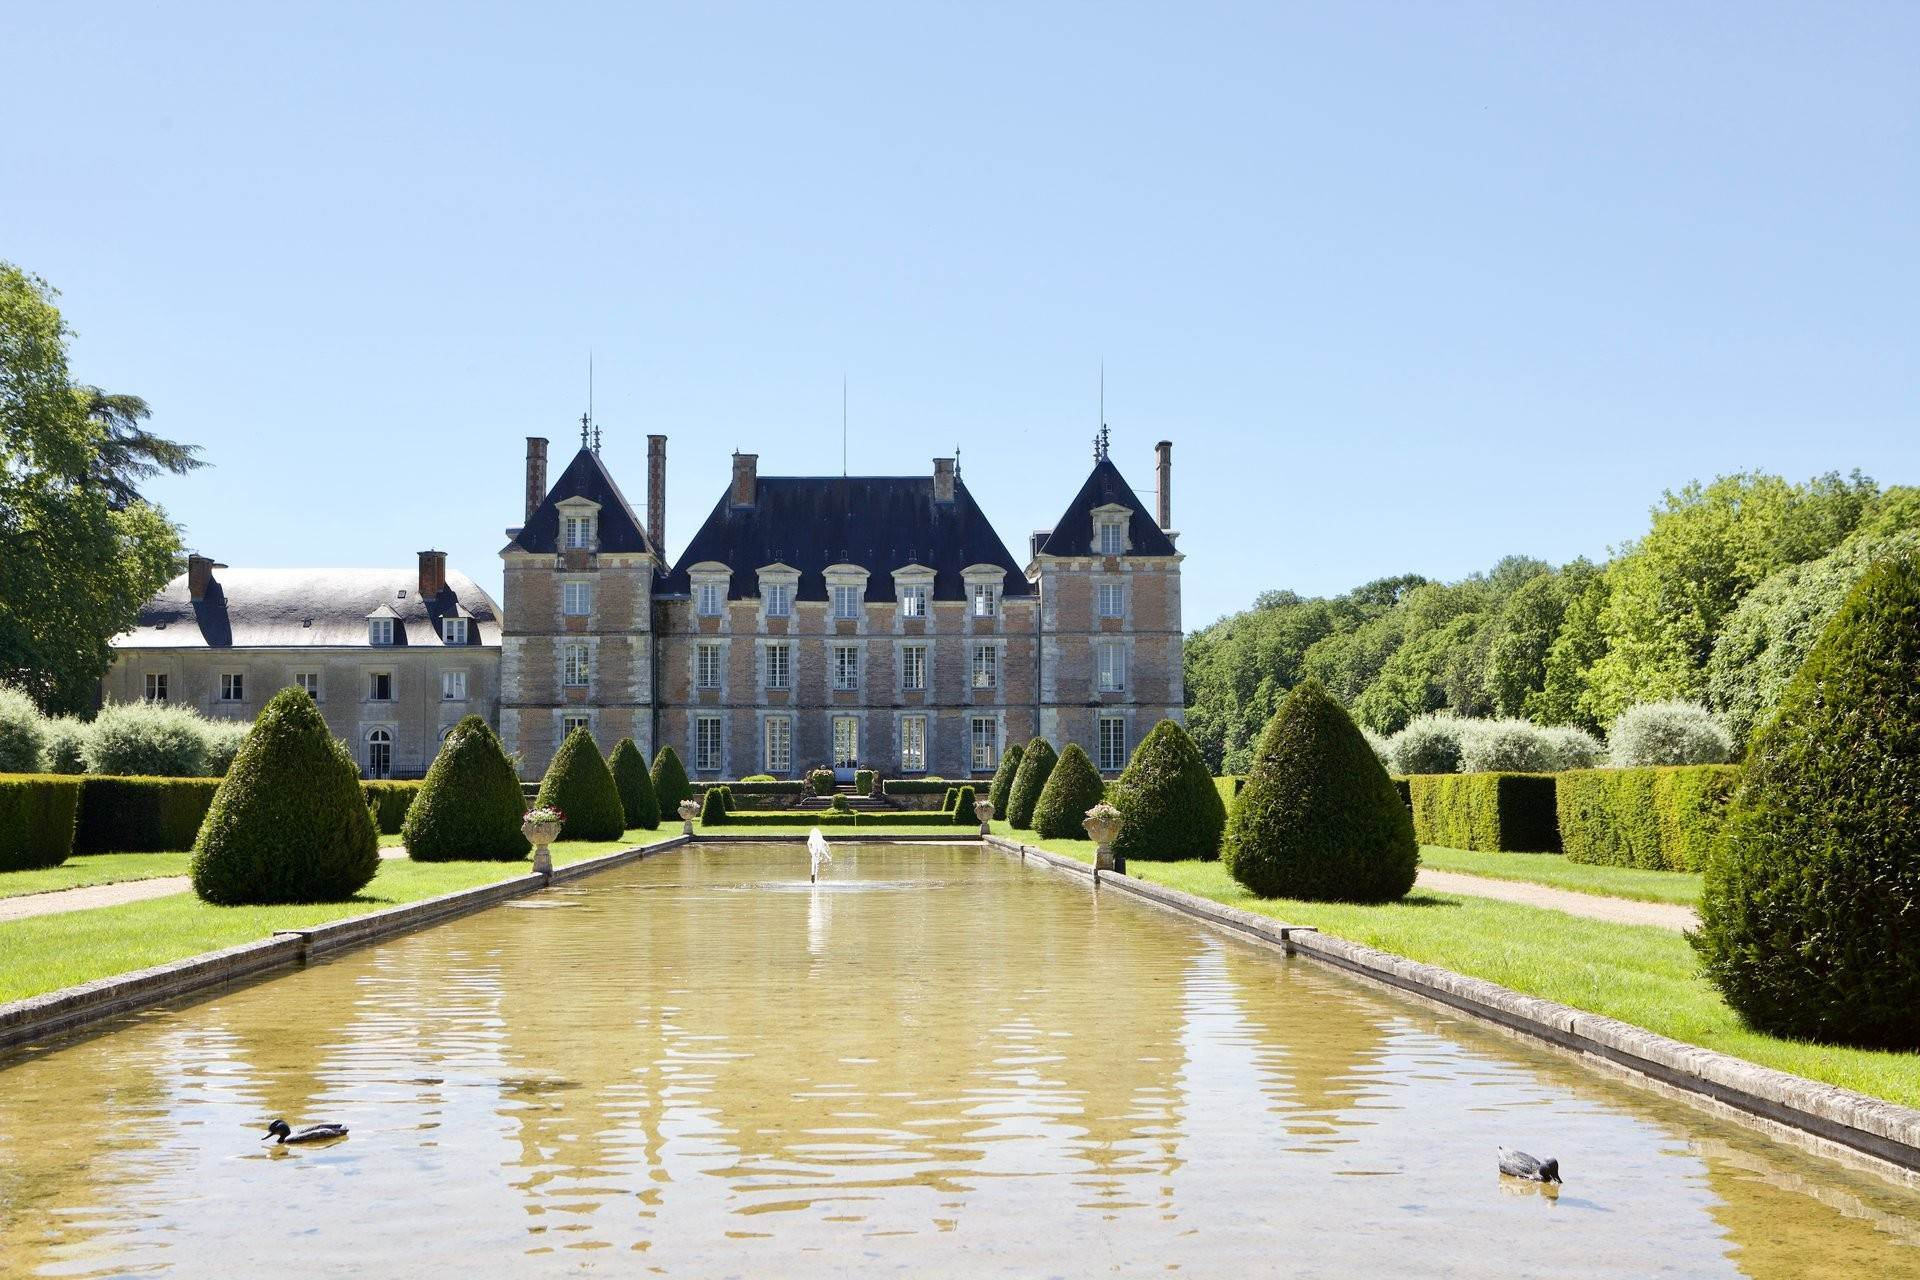 6. Ville / Villette per Vendita alle ore An exceptional listed Louis XIII style chateau set in 40 enclosed hectares with formal French gardens. An architectural gem Blois, Loir et Cher,41000 Francia